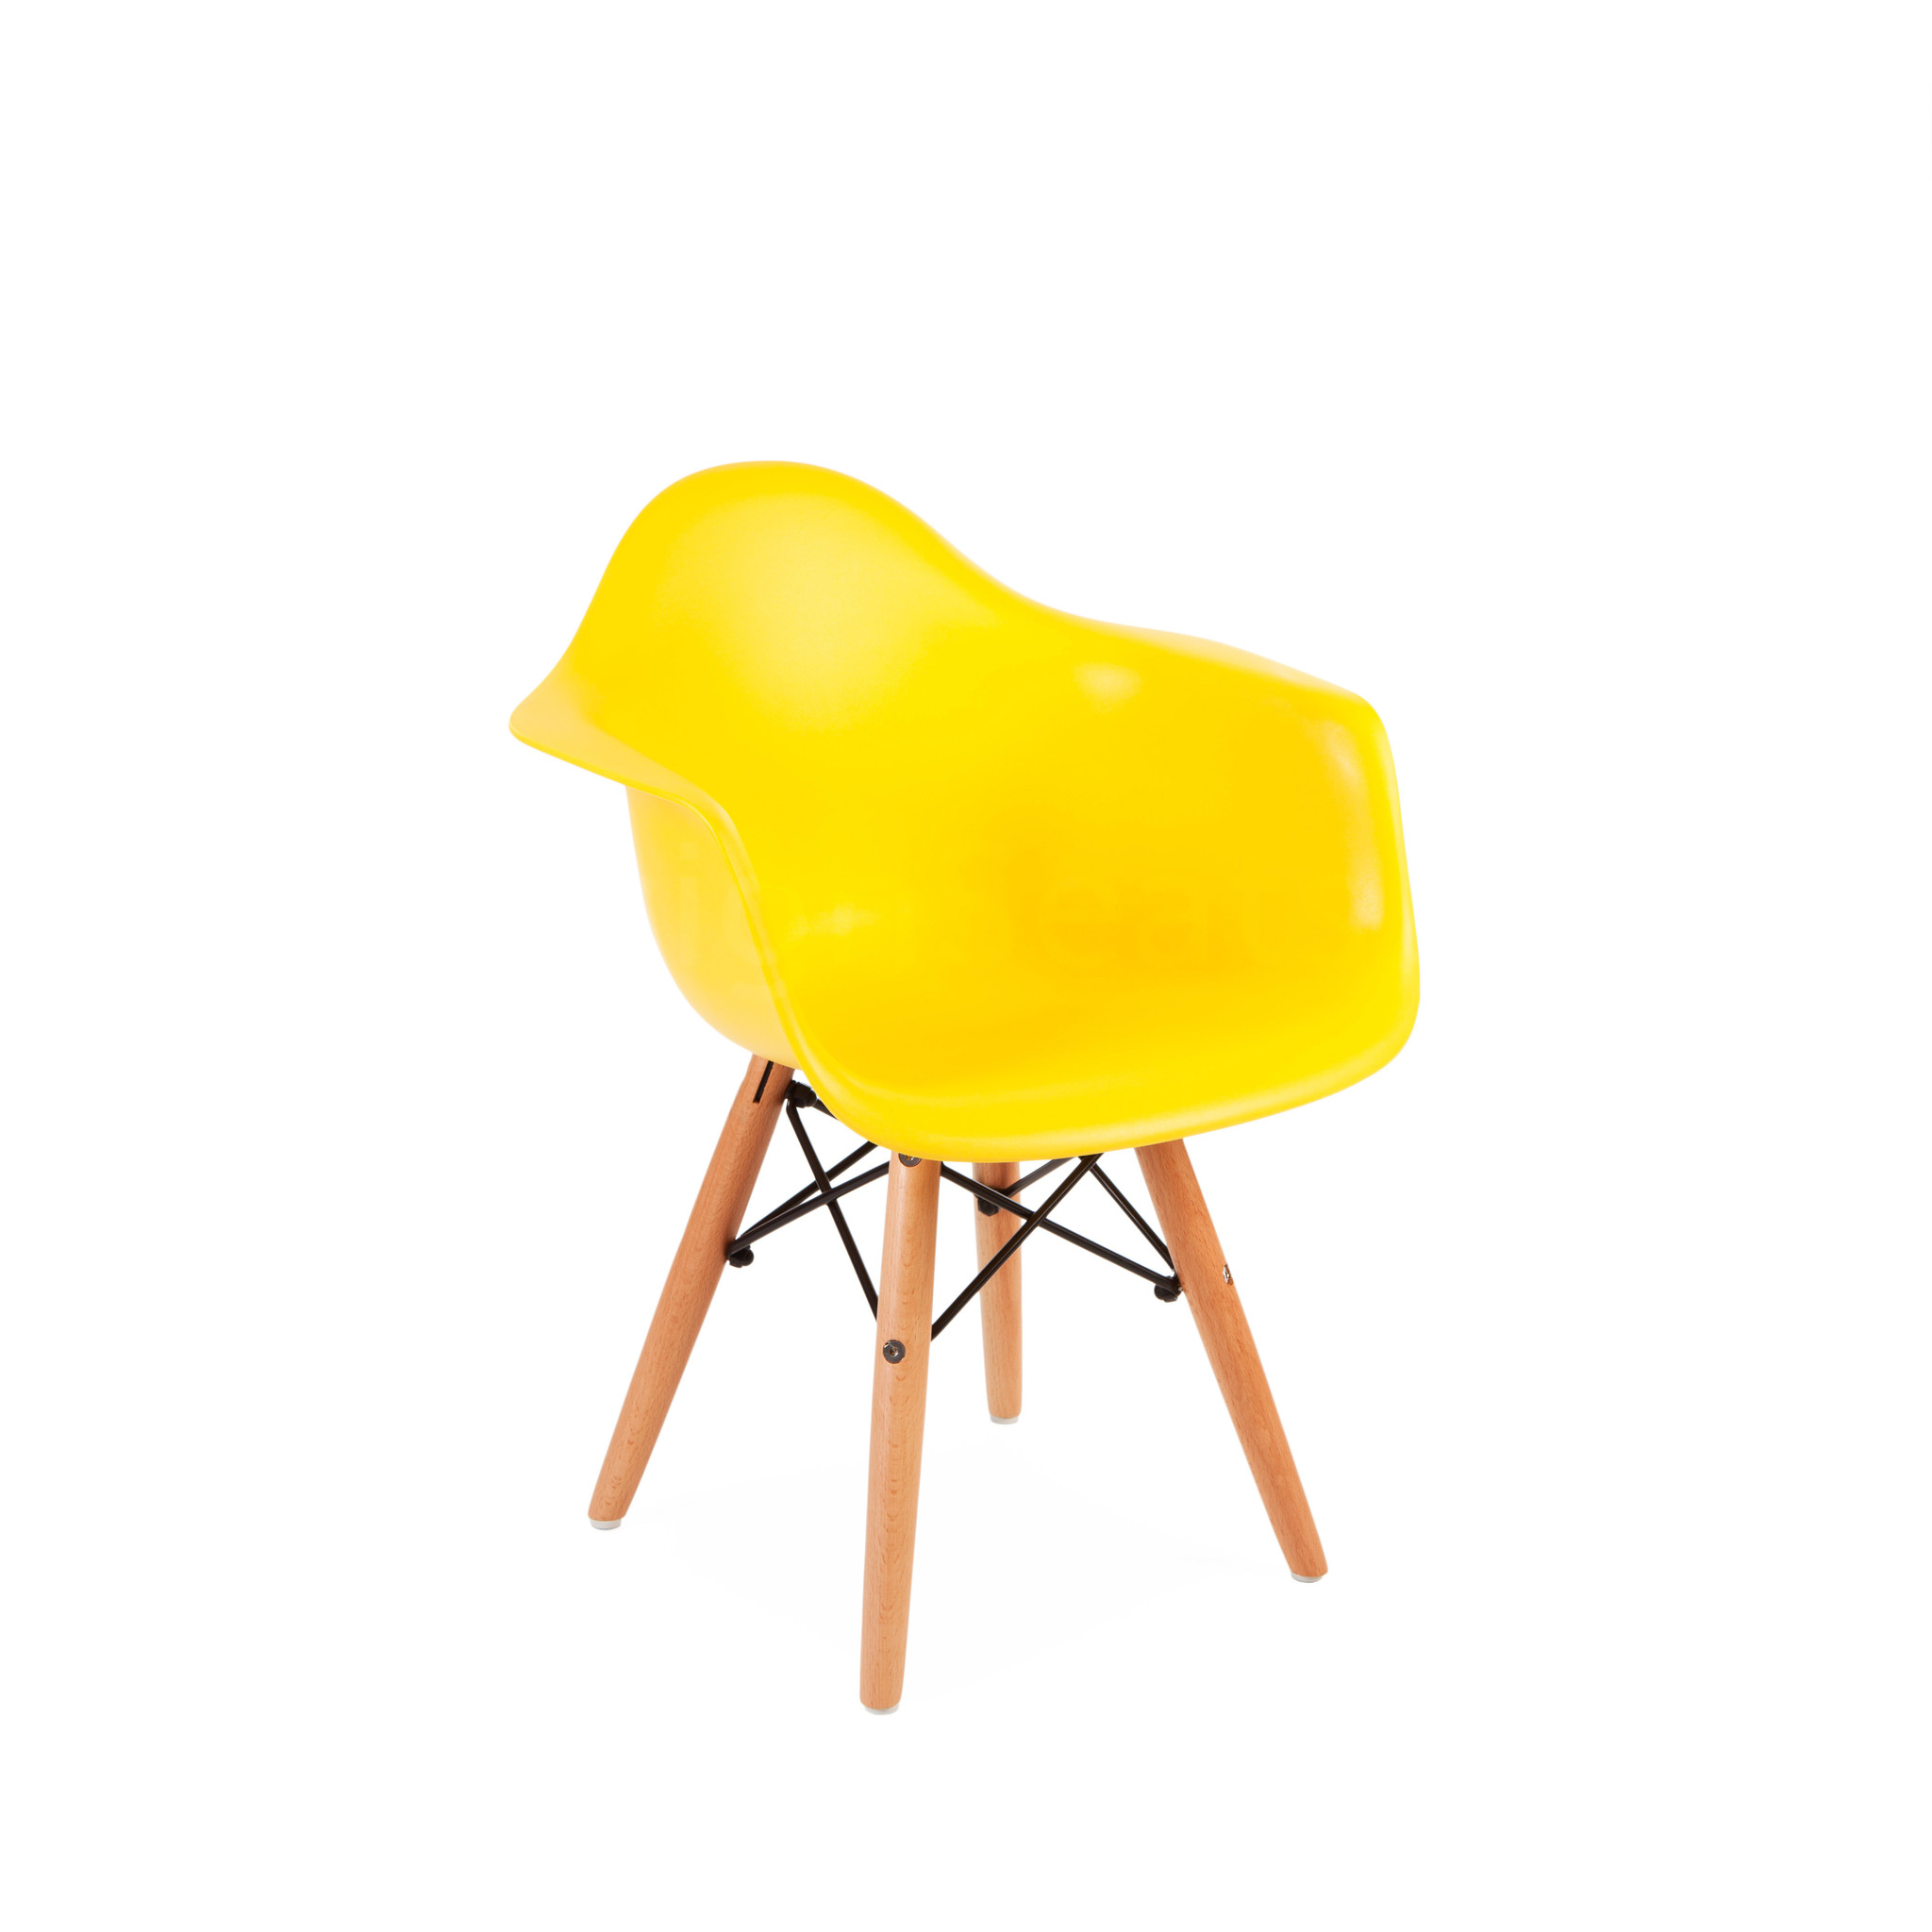 Eanes Chair Daw Eames Kids Chair Corn Yellow